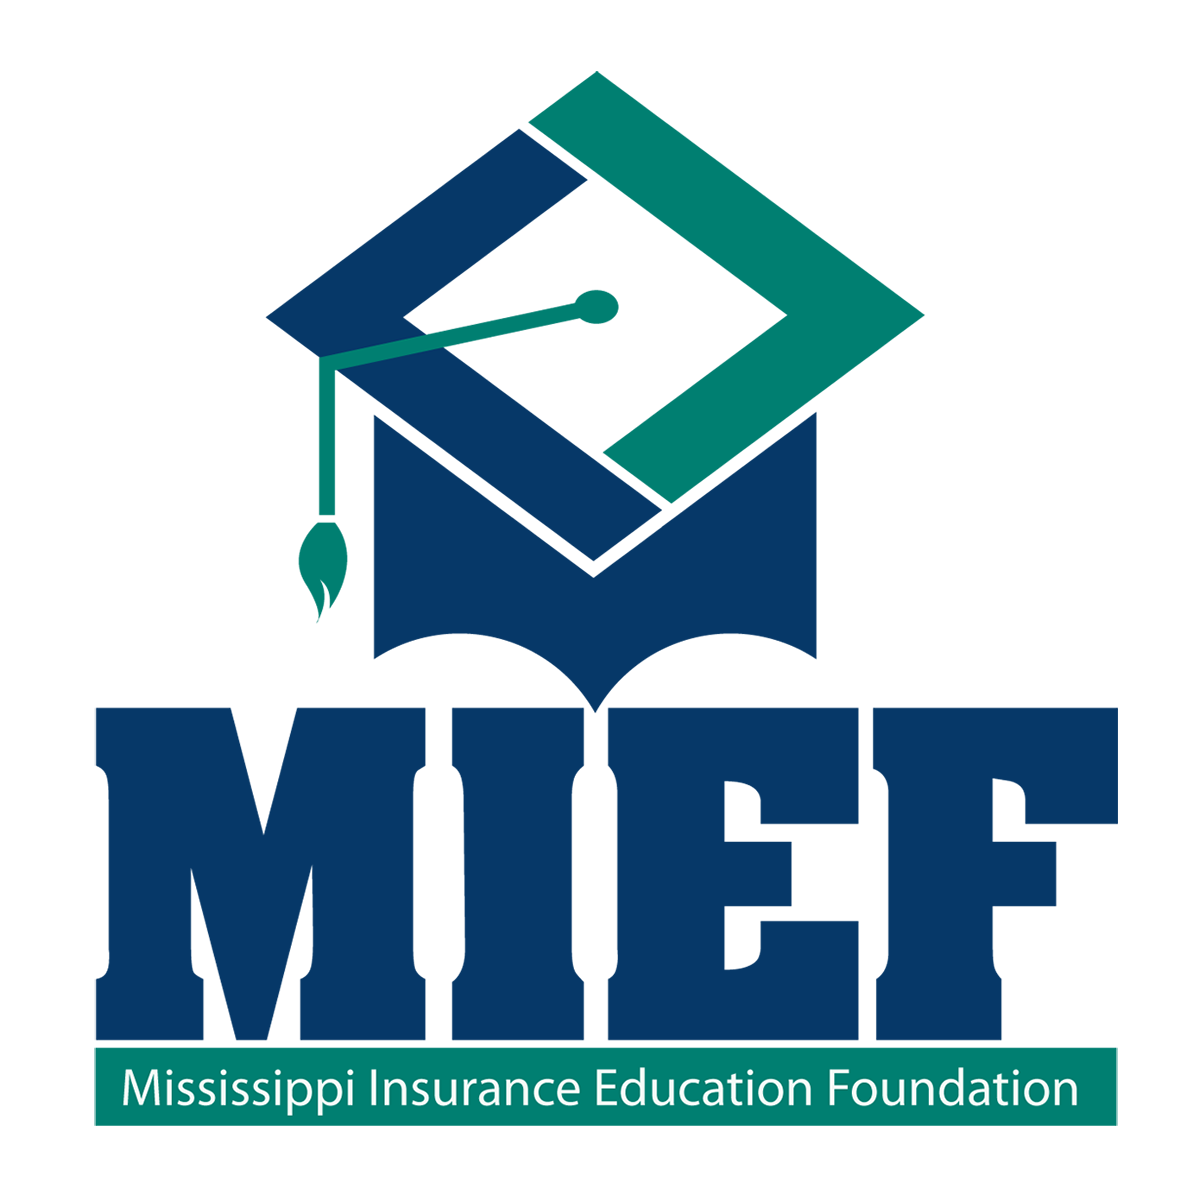 Insurance And Education: Mississippi Insurance Education Foundation